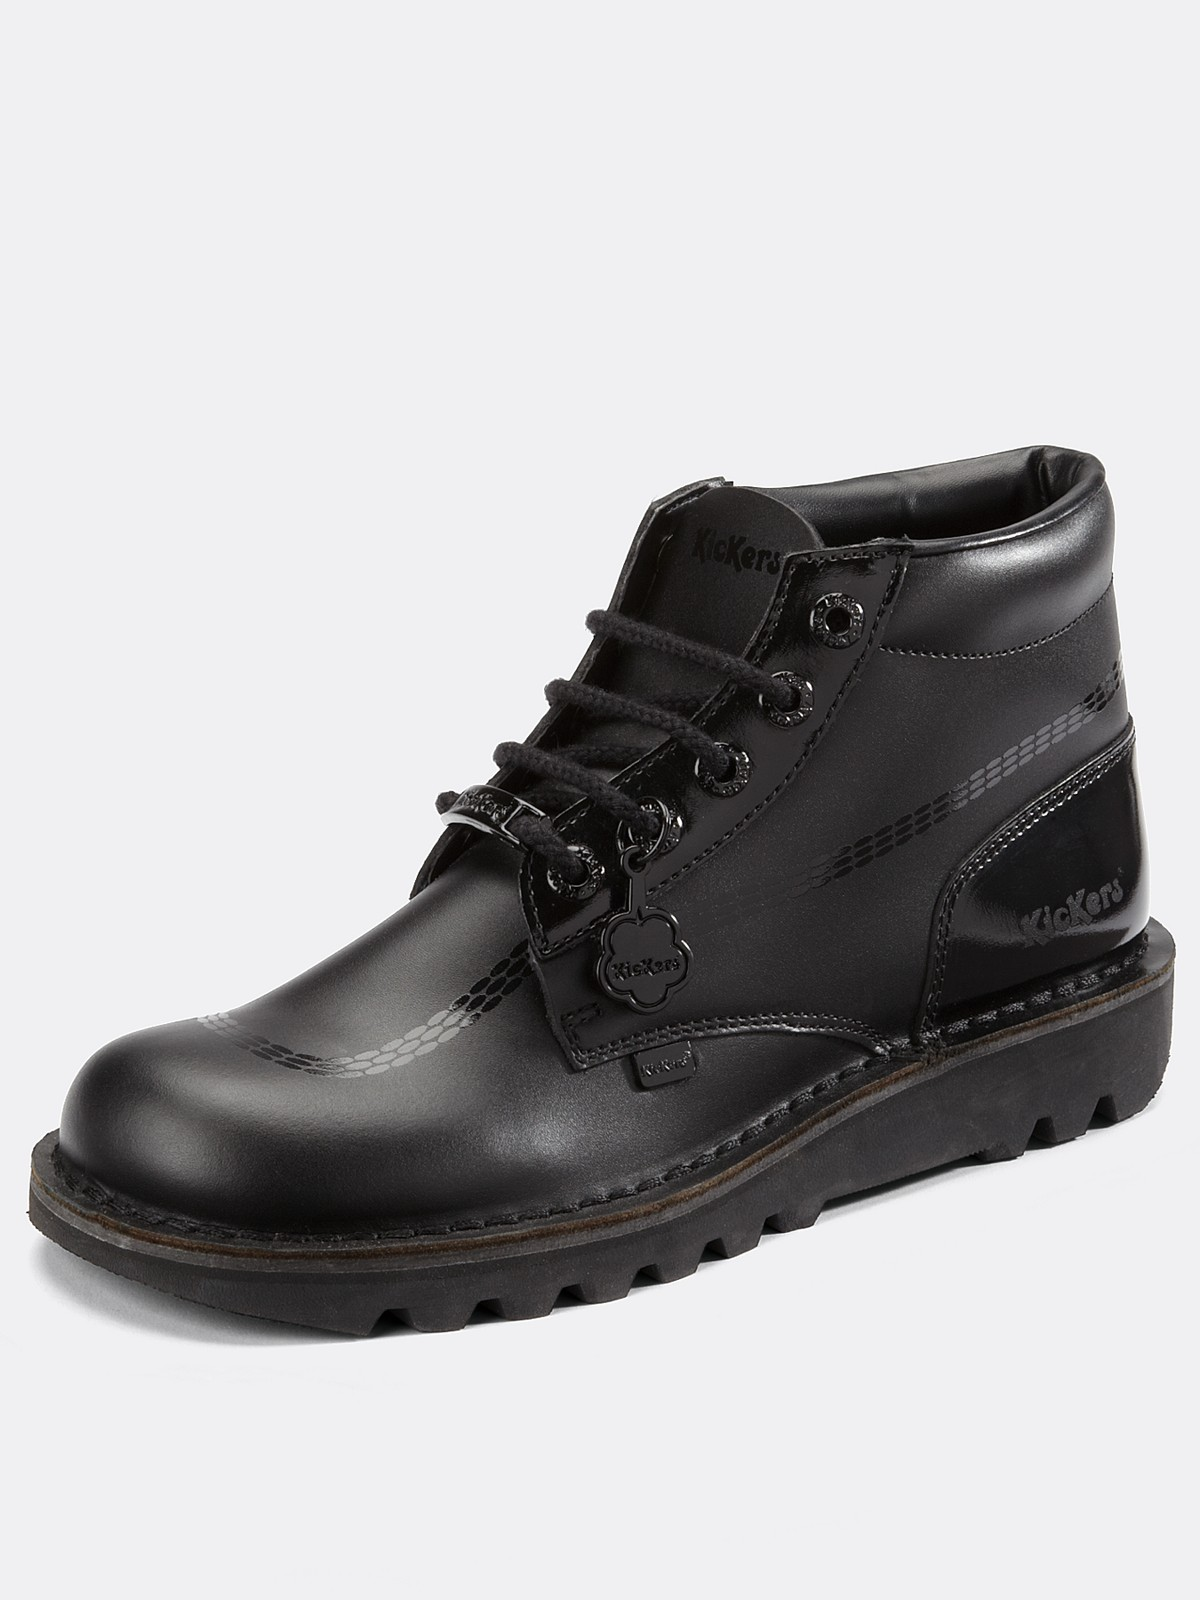 kickers kickers kick shade boots in black for lyst